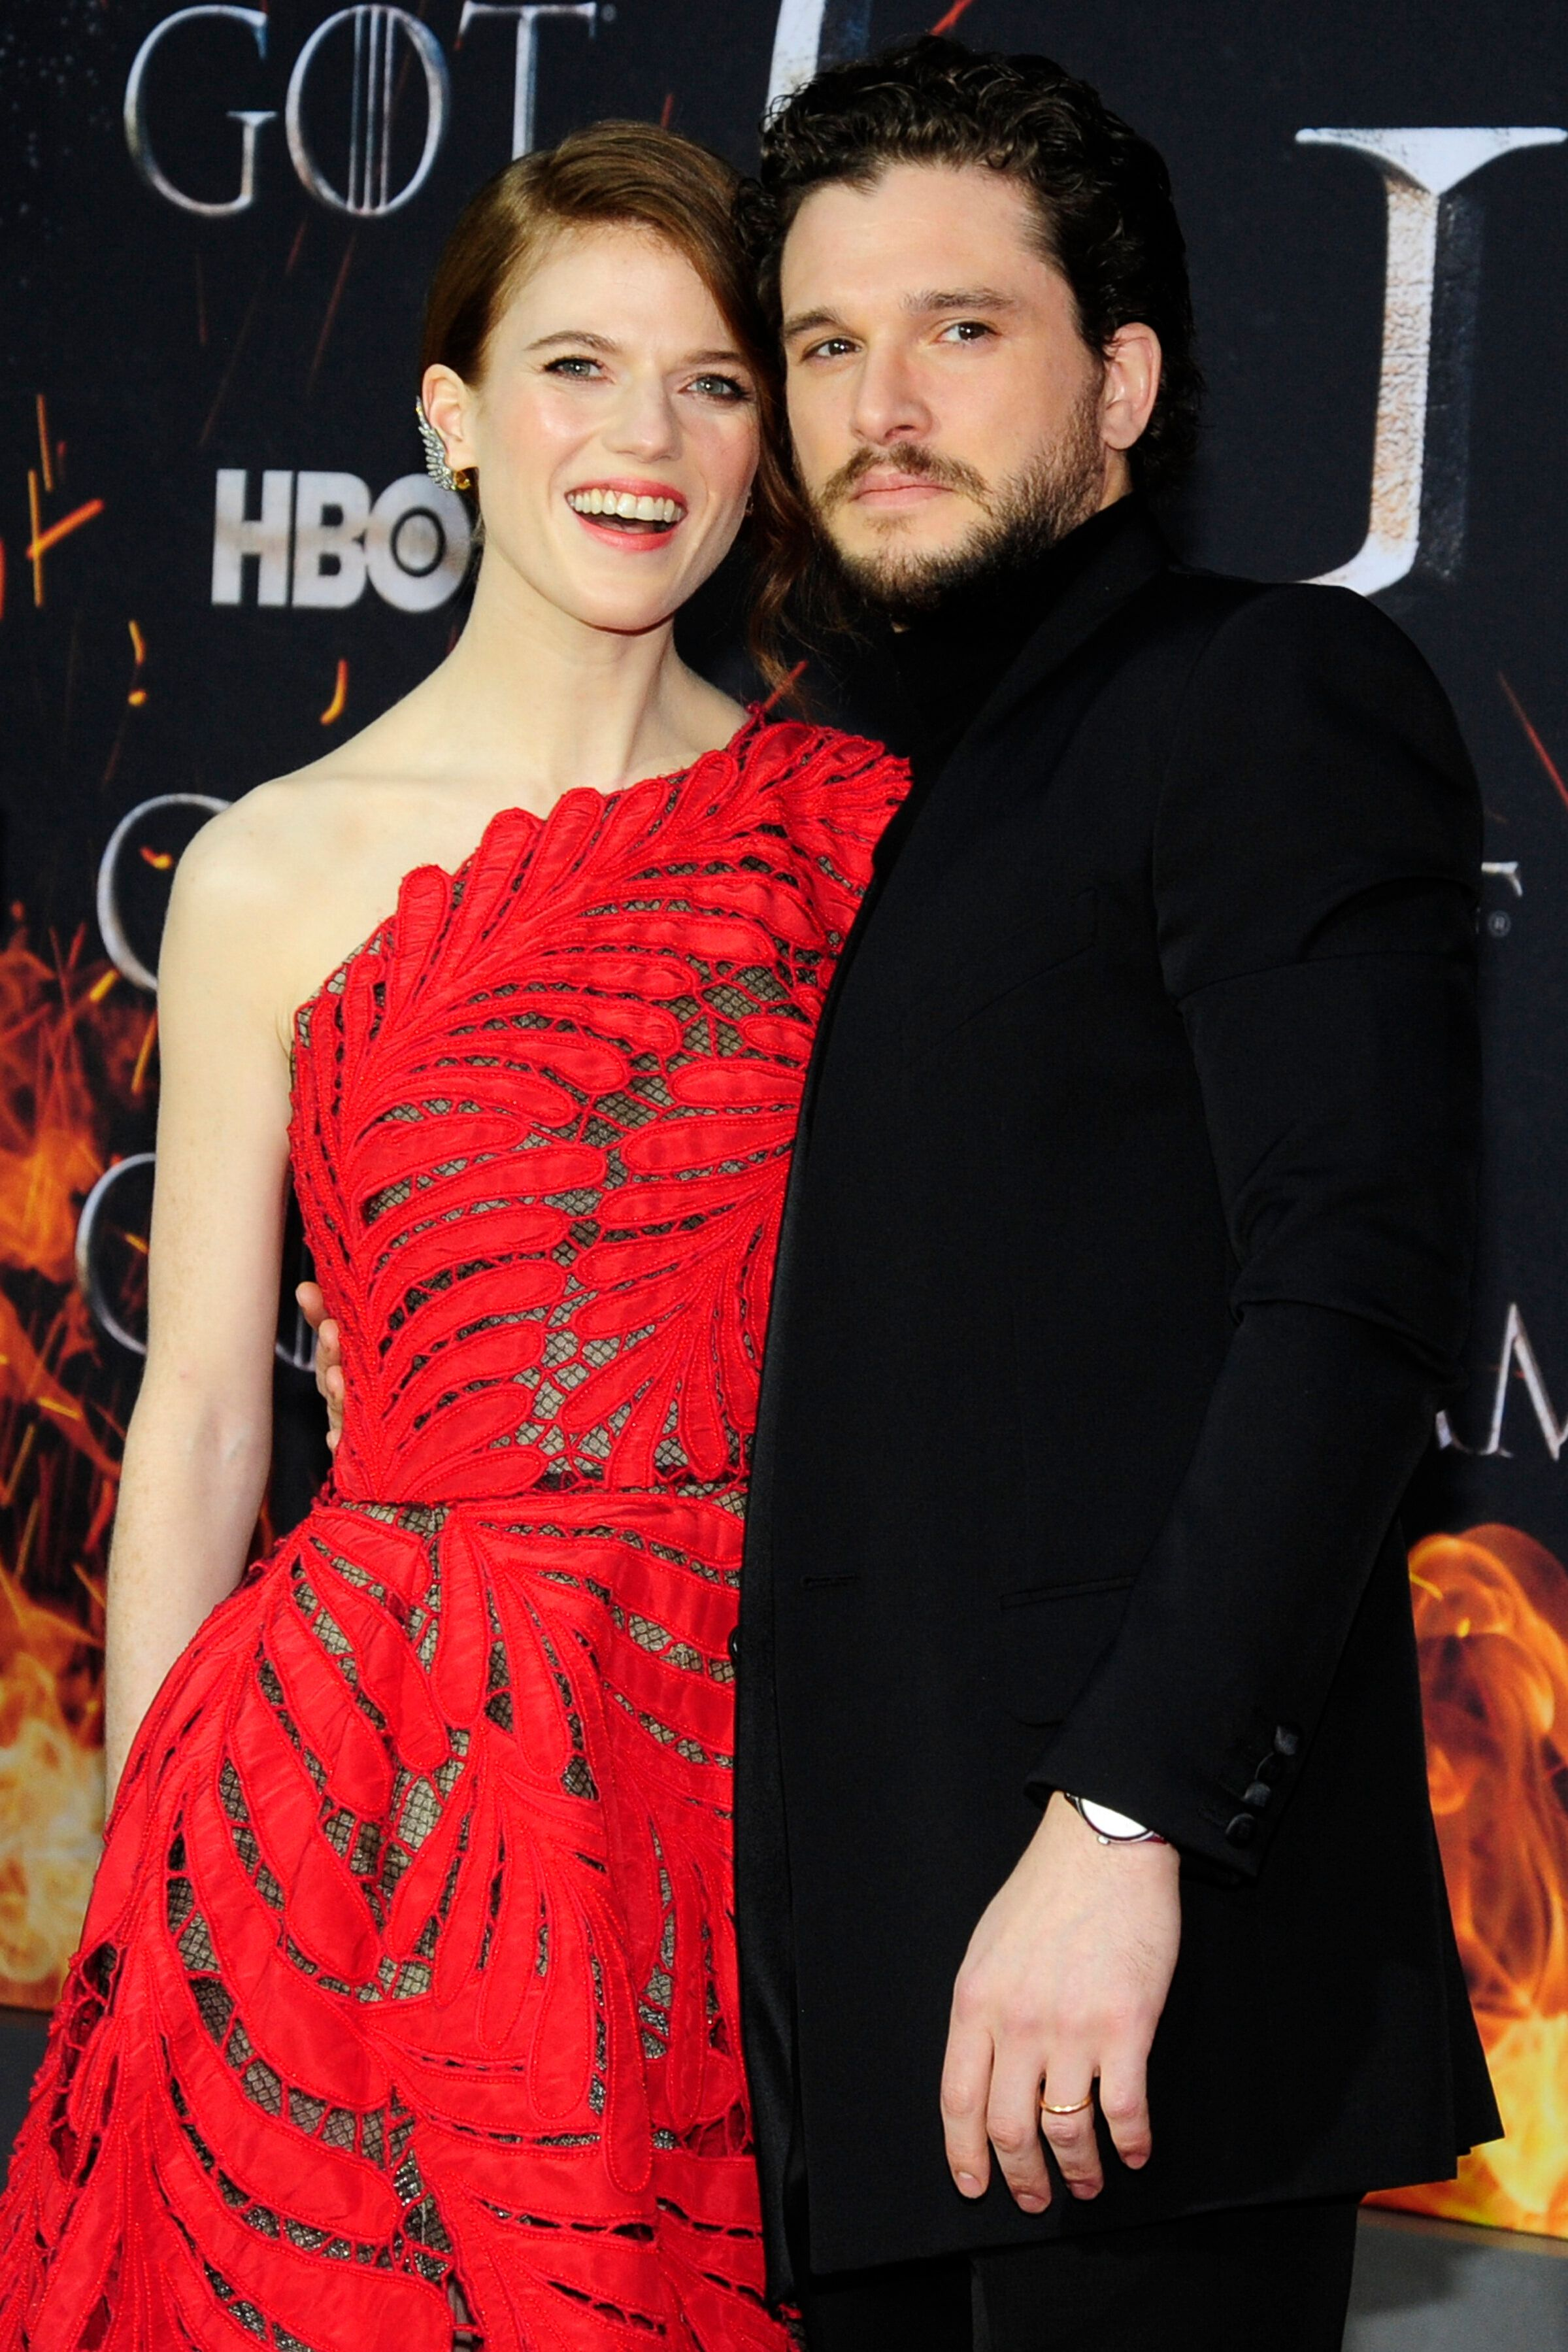 "NEW YORK, NY - APRIL 3: Rose Leslie and Kit Harrington attend ""Game Of Thrones"" New York Premiere at Radio City Music Hall, NYC on April 3, 2019 in New York City. (Photo by Paul Bruinooge/Patrick McMullan via Getty Images)"